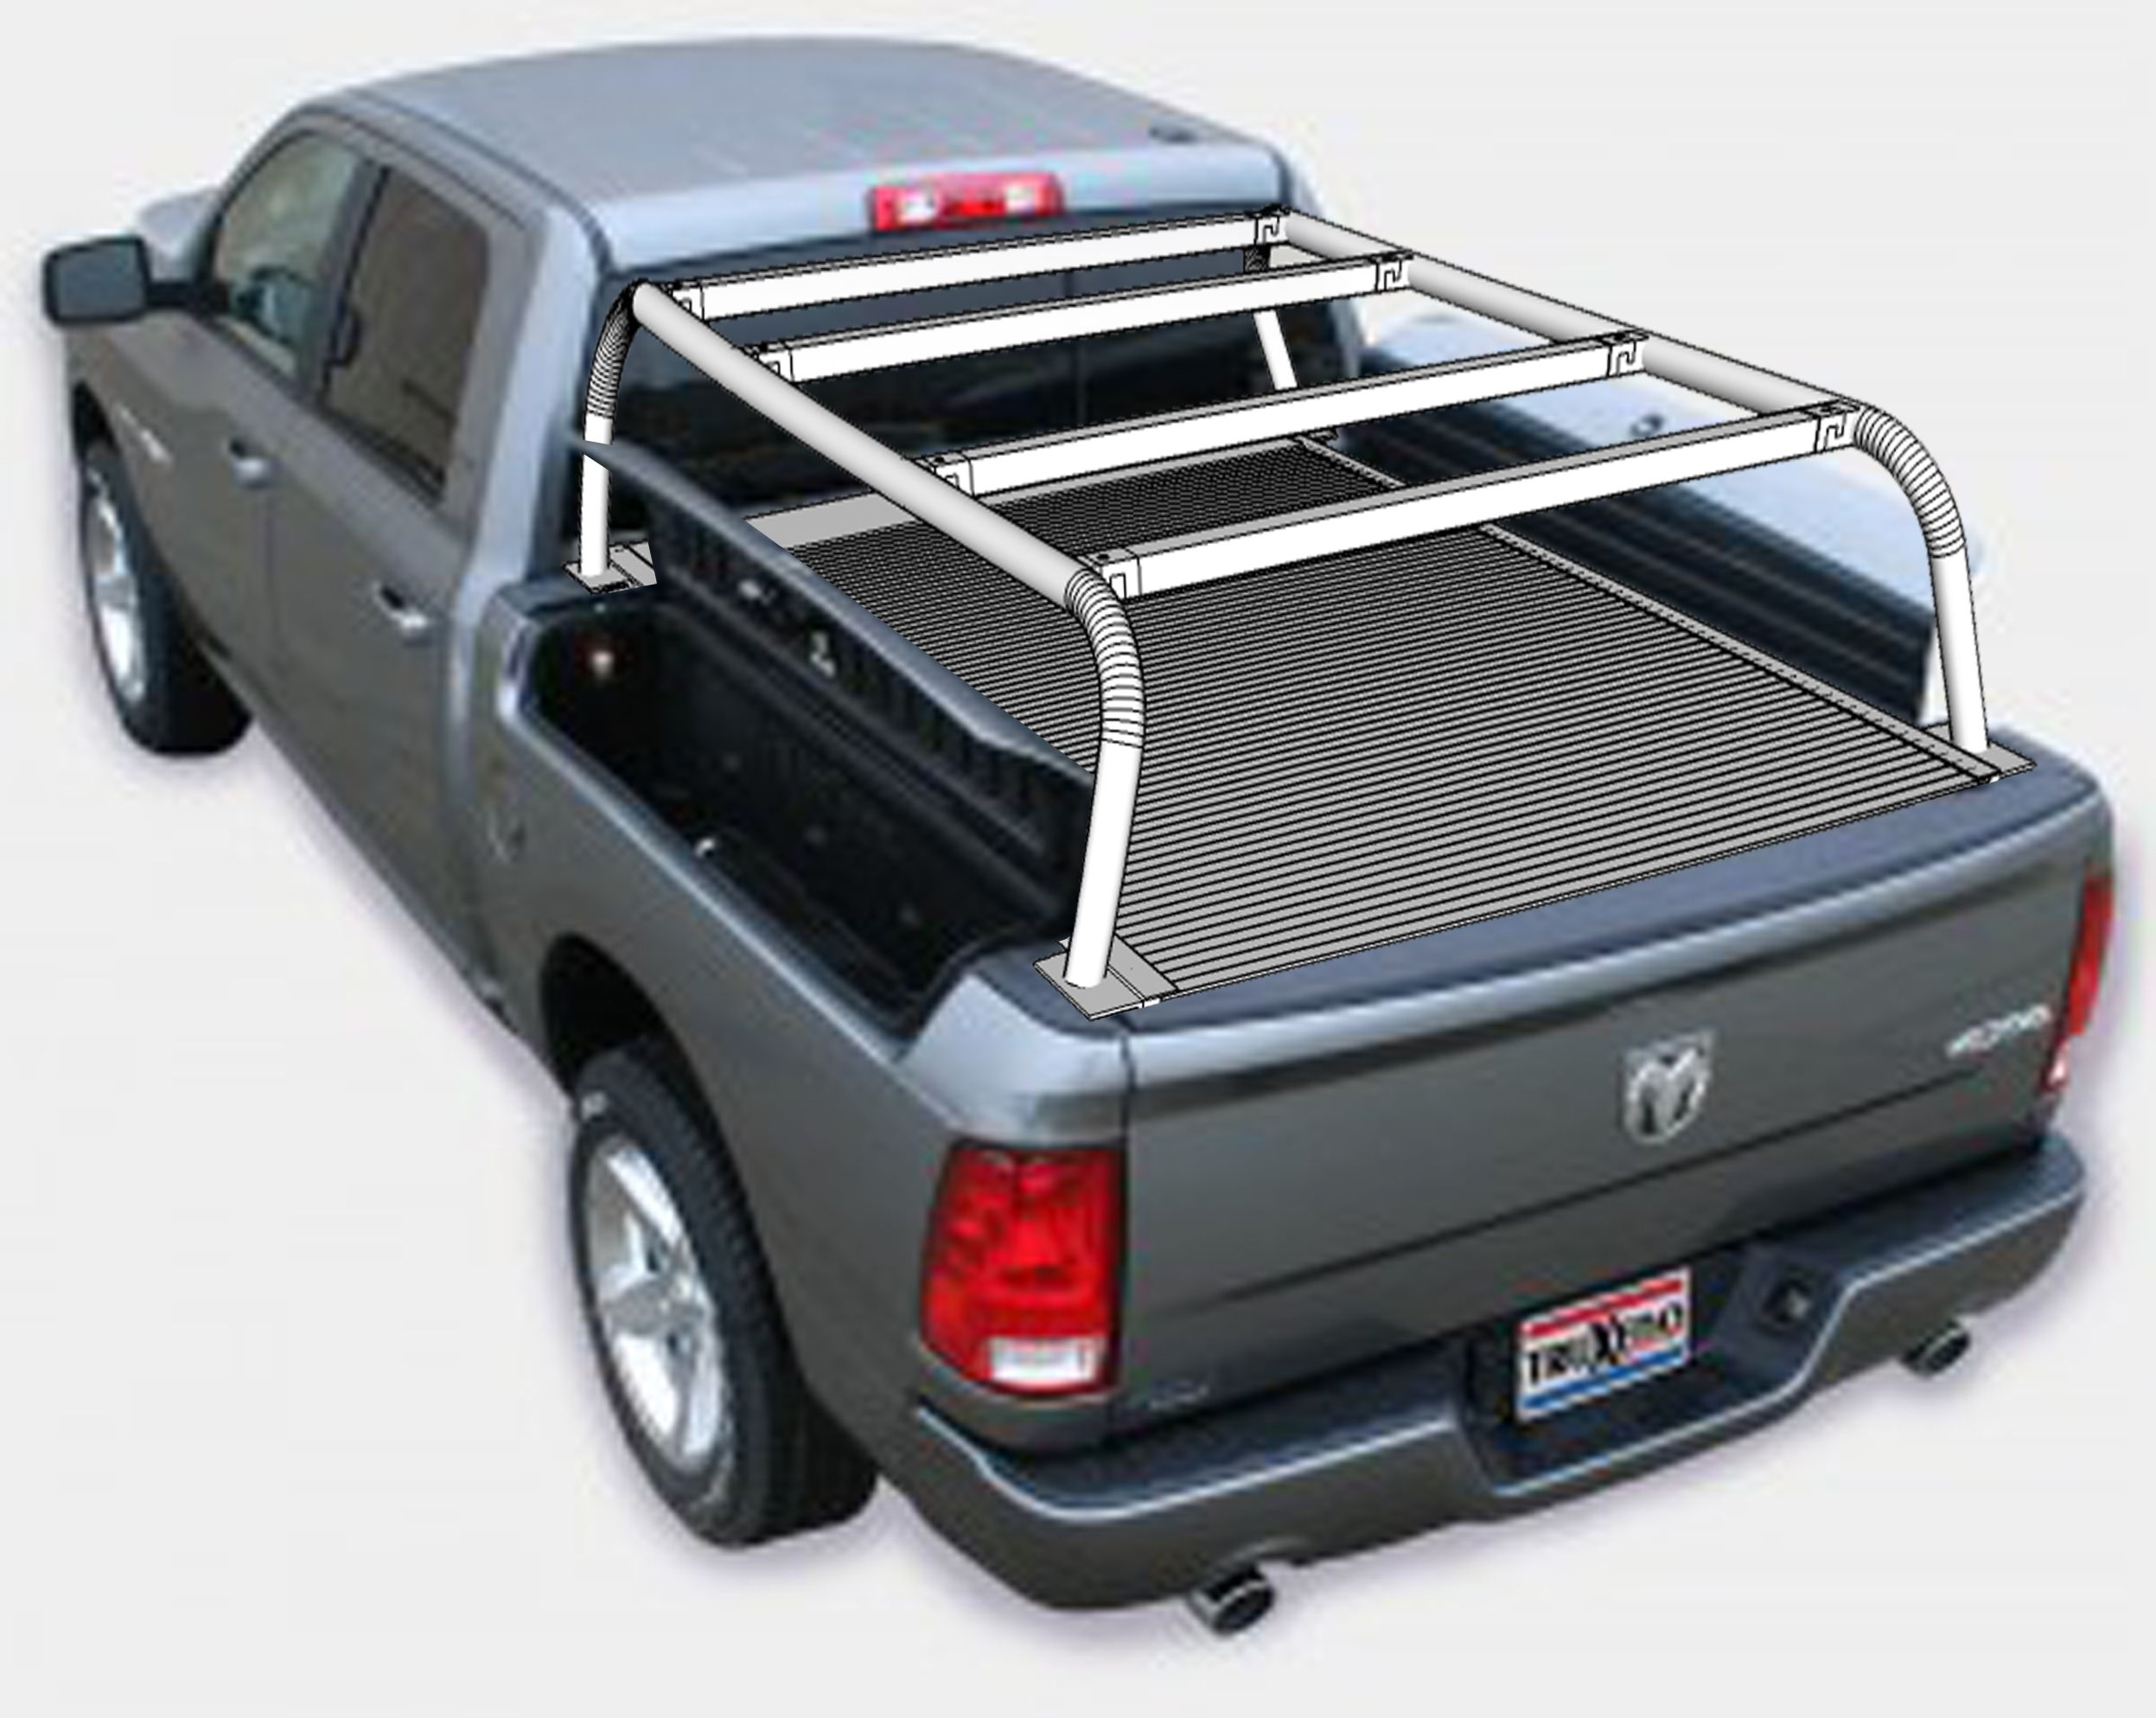 Expedition Truck Bed Rack, Roof Top Tent Rack,